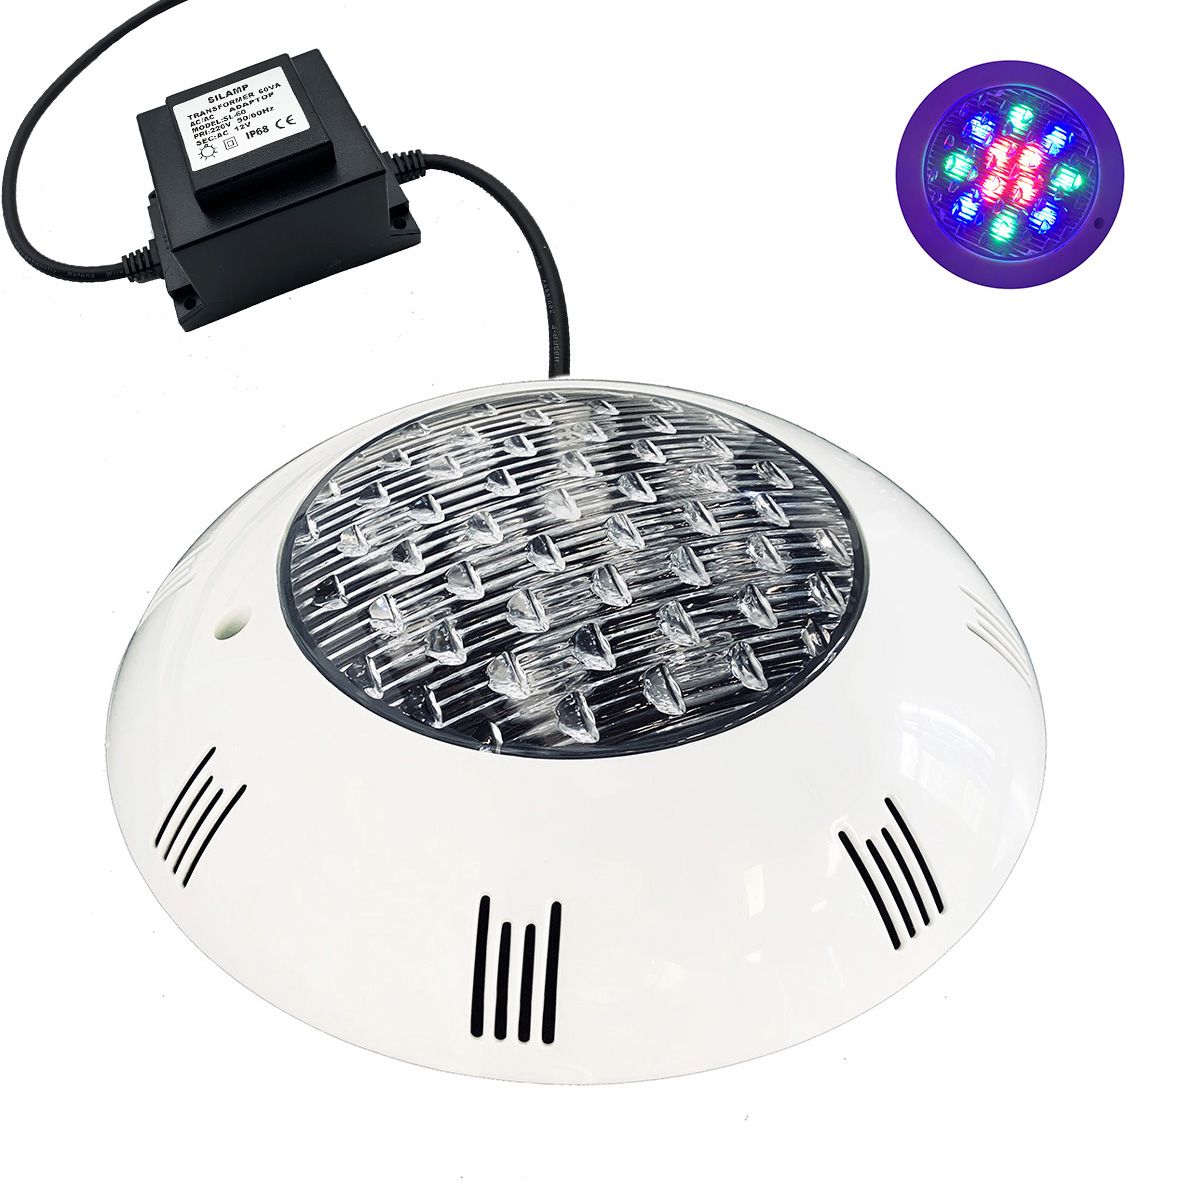 Faretto LED 12V 12w impermeabile IP68 FE80-12W Multicolor CON TRASFORMATORE